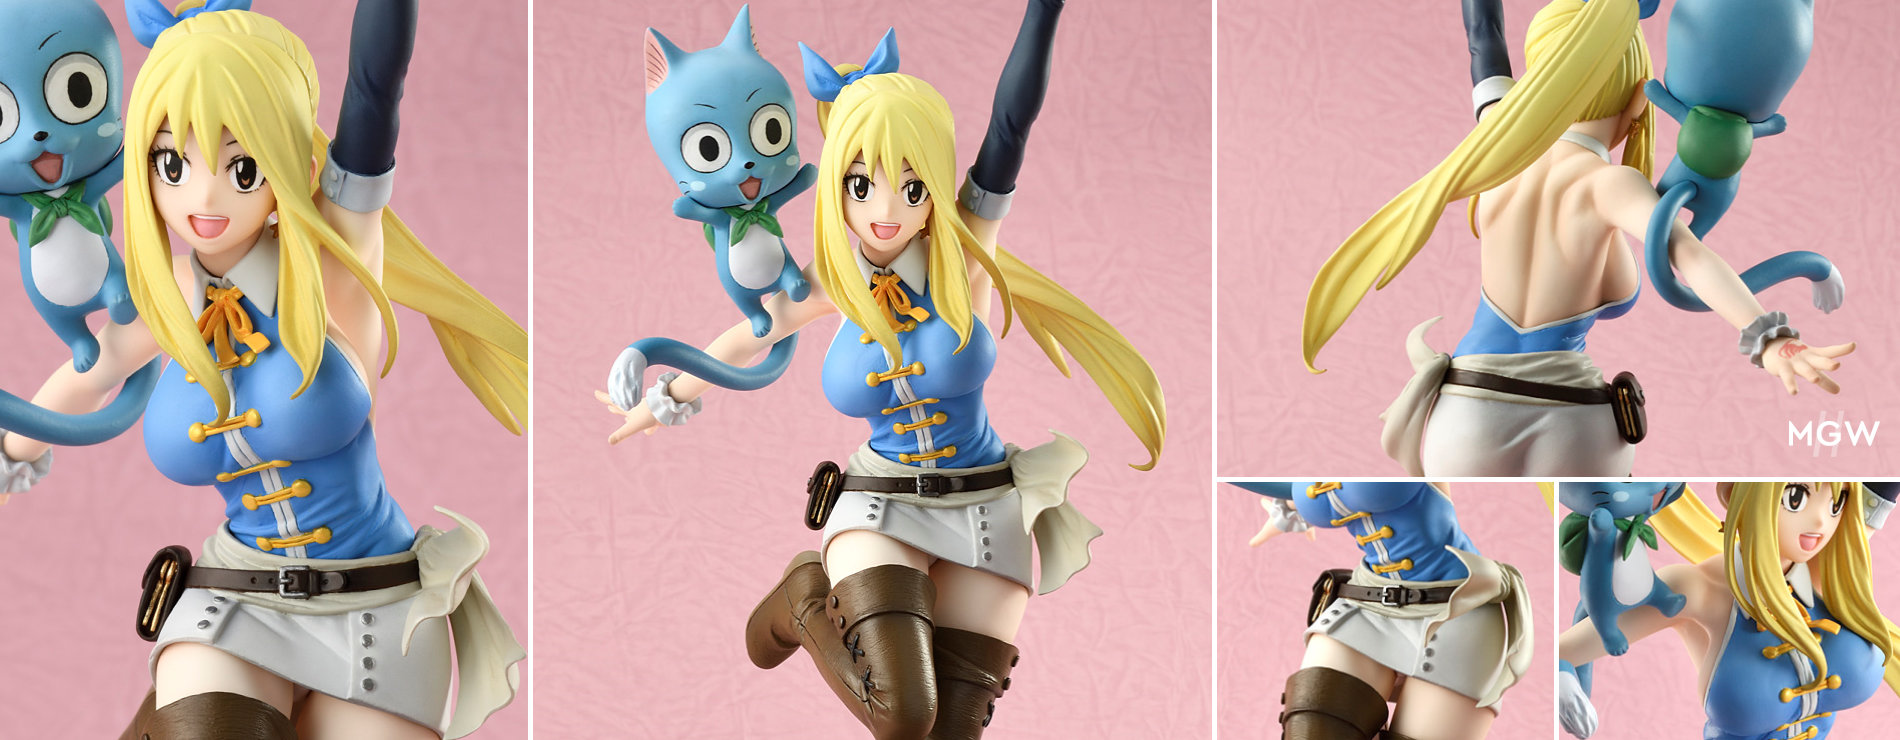 Lucy Heartfilia by BellFine from FAIRY TAIL MyGrailWatch Anime Figure Guide